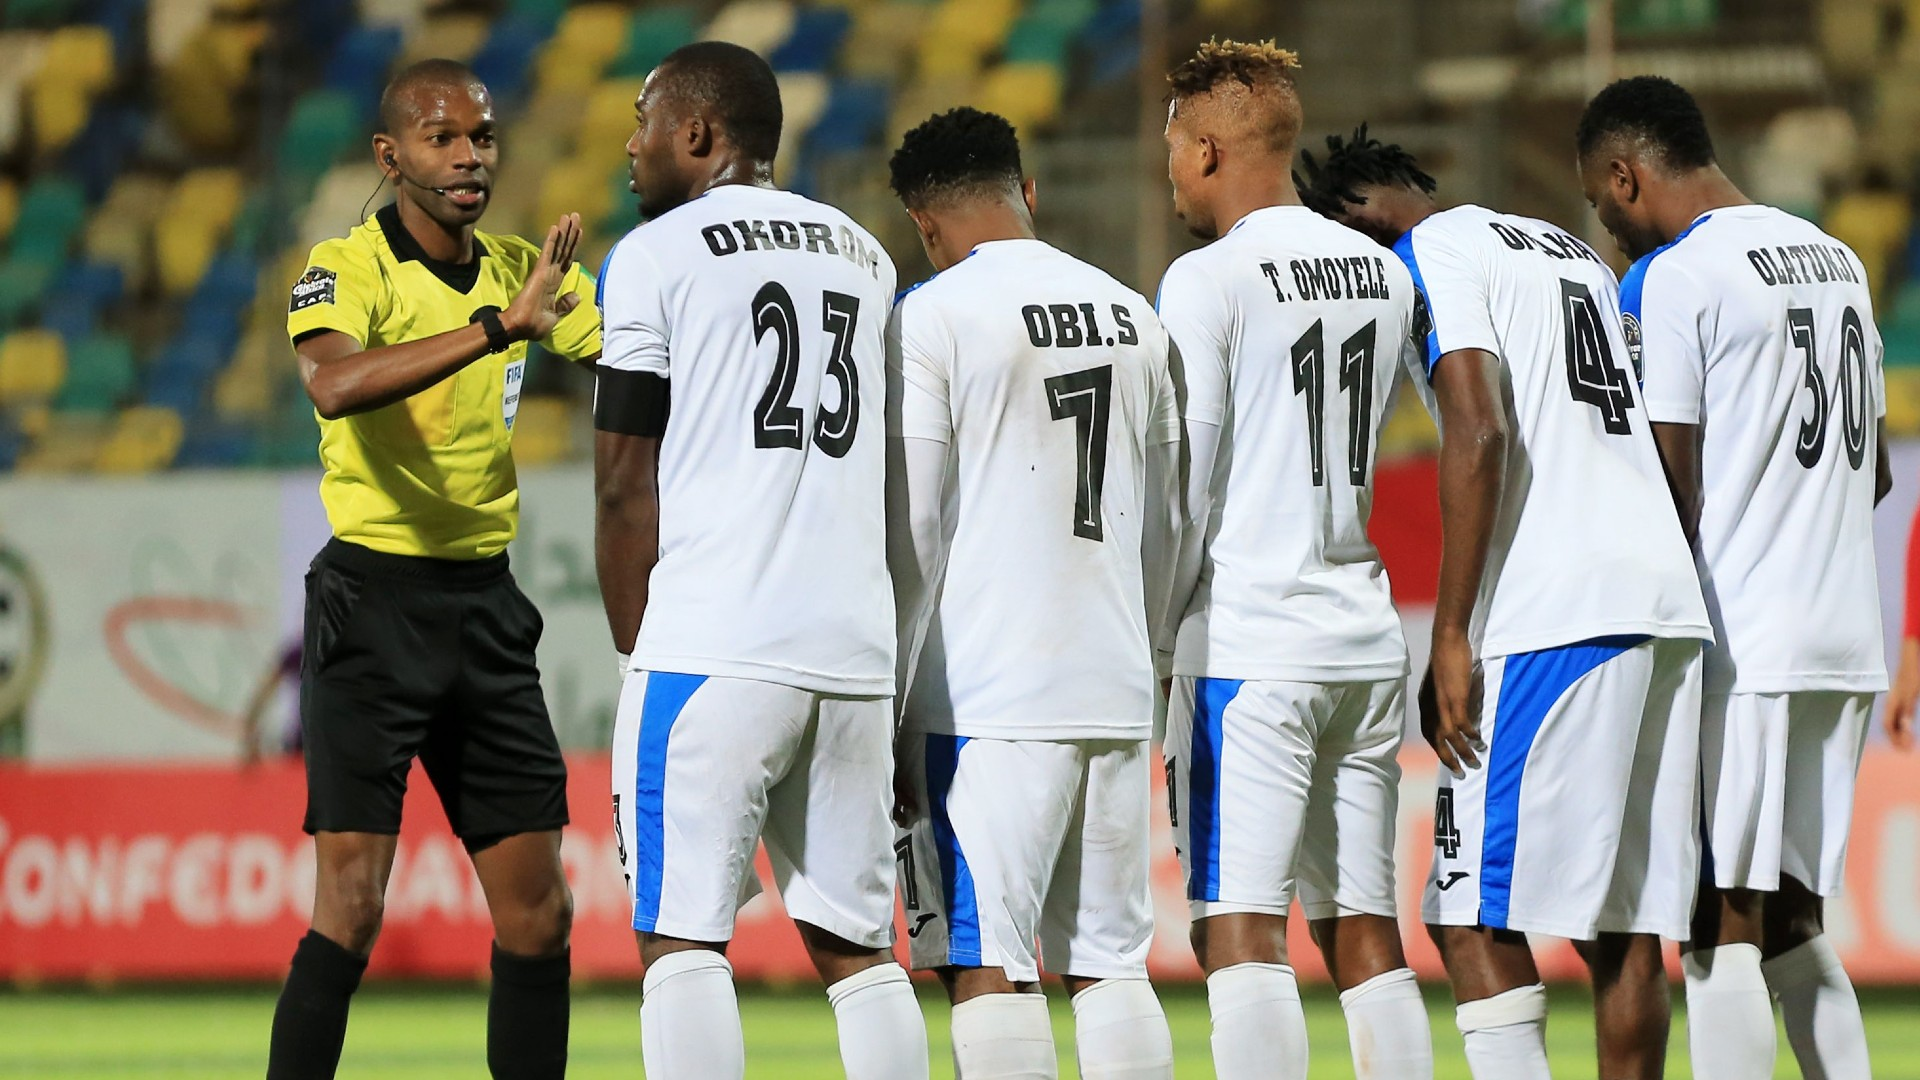 NPFL final day: Enyimba, Rivers United and Kano Pillars chase continental tickets